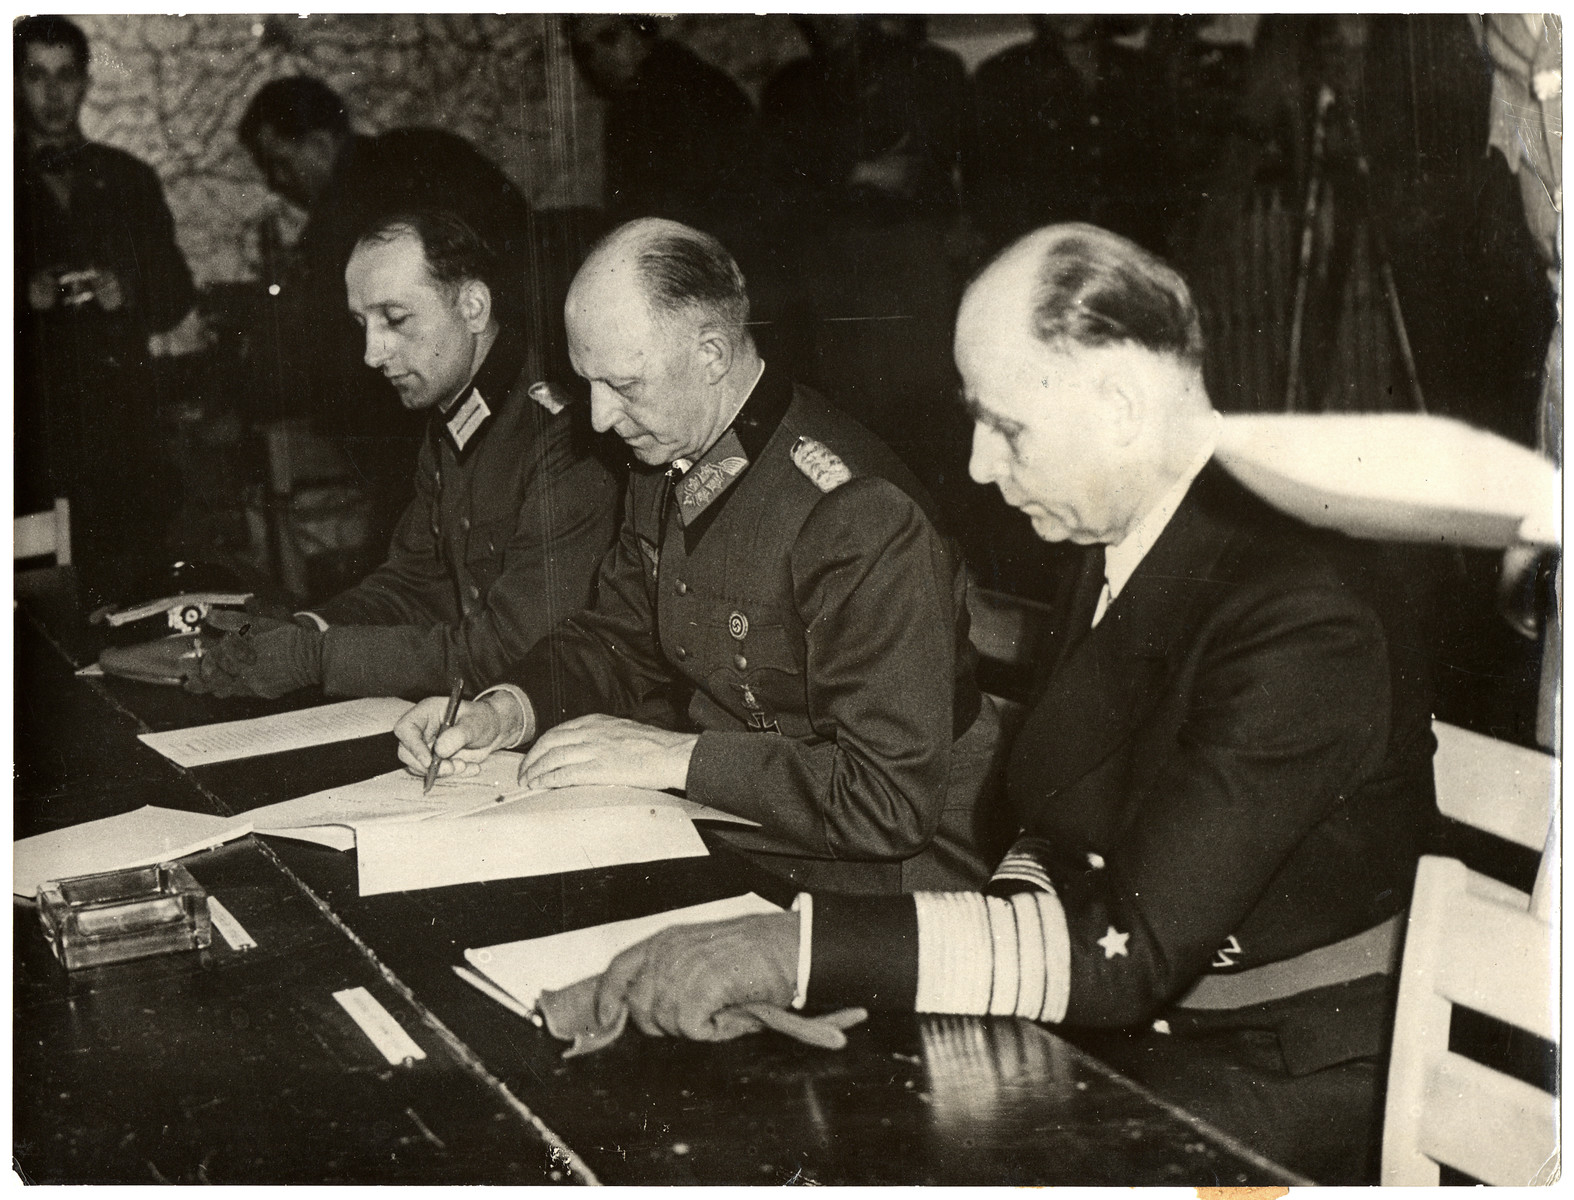 """Original Caption: """"Unconditional Surrender of Germany Signed at Reims; Colonel Ceneral Gustaf Jodl, German Cheif of Staff to Admiral Karl Doenitz, signed at 2:41 a.m. May 7, 1945, the document of unconditional surrender of Germany to the Allies in the war room at Forward German officers sign papers of surrender ending World War II.  Headquarters of Supreme Headquarters Allied Expeditionary Force at Reims, France. Under the instrument of surrender all German armed forces were bound to lay down their arms on all fronts. On General Jodl's left is Admiral Hans-Georg von Friedeburg of the German Navy, and on his right is Major Wilhelm Oxenius of the German General Staff. On extreme left is Colonel Ivan Zenkovitch, aide to Major General of Artillery Ivan Susloparoff who signed the document on behalf of the Soviet High Command."""""""